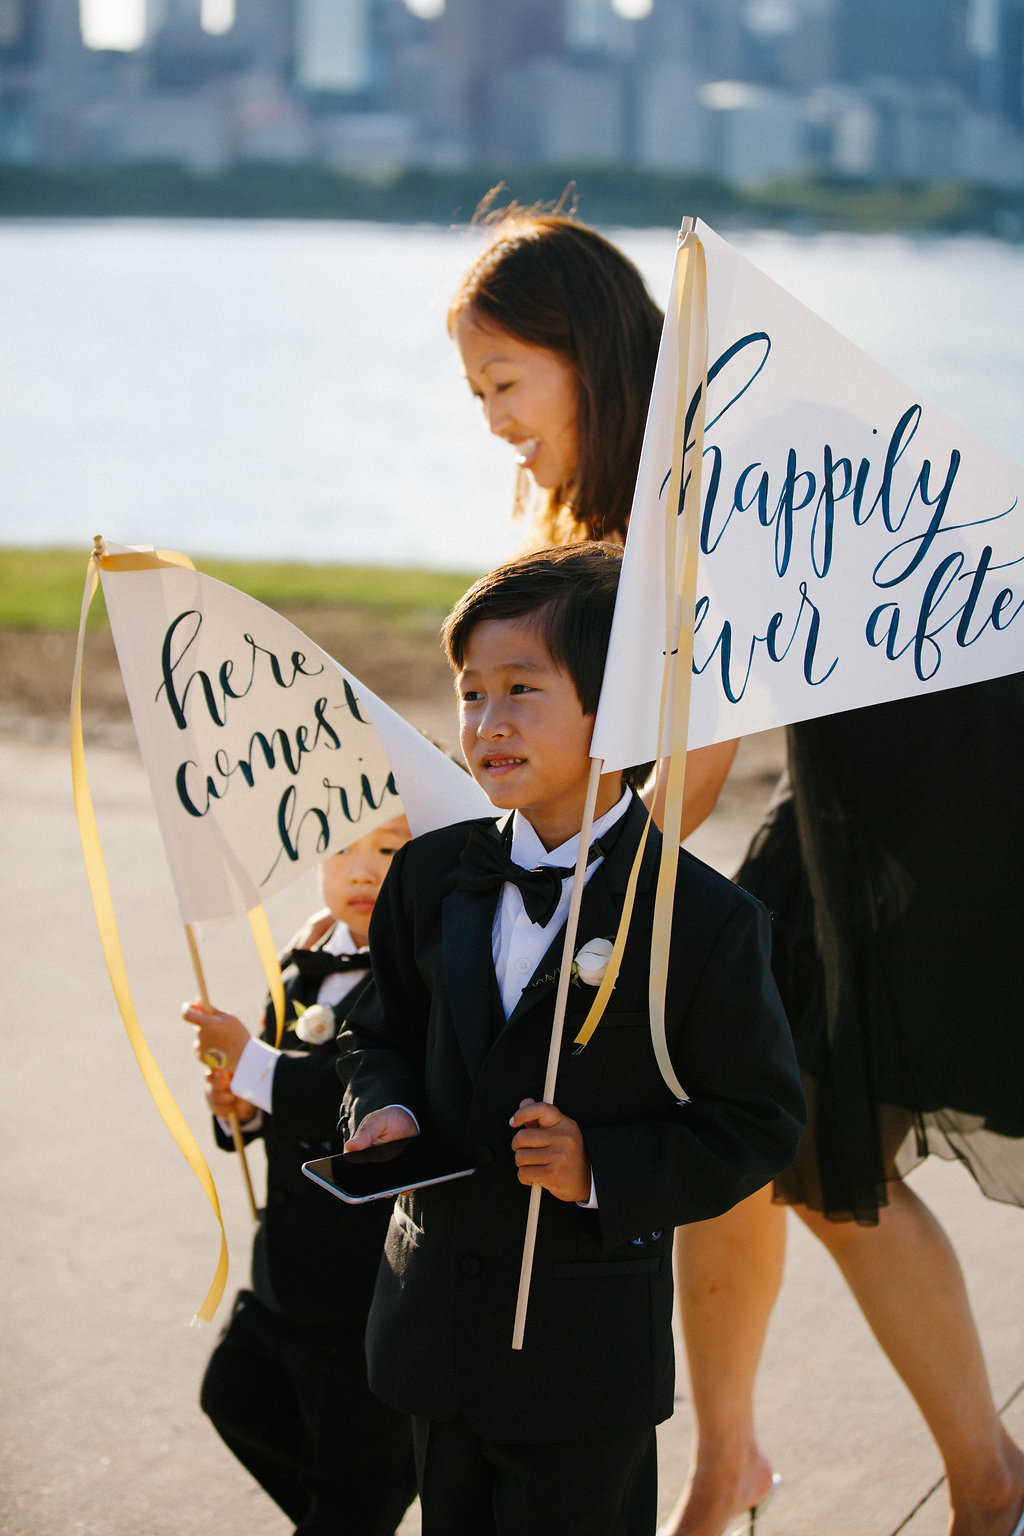 lakefront_wedding_chicago_calligraphy_flag_banner_happily ever after.jpg